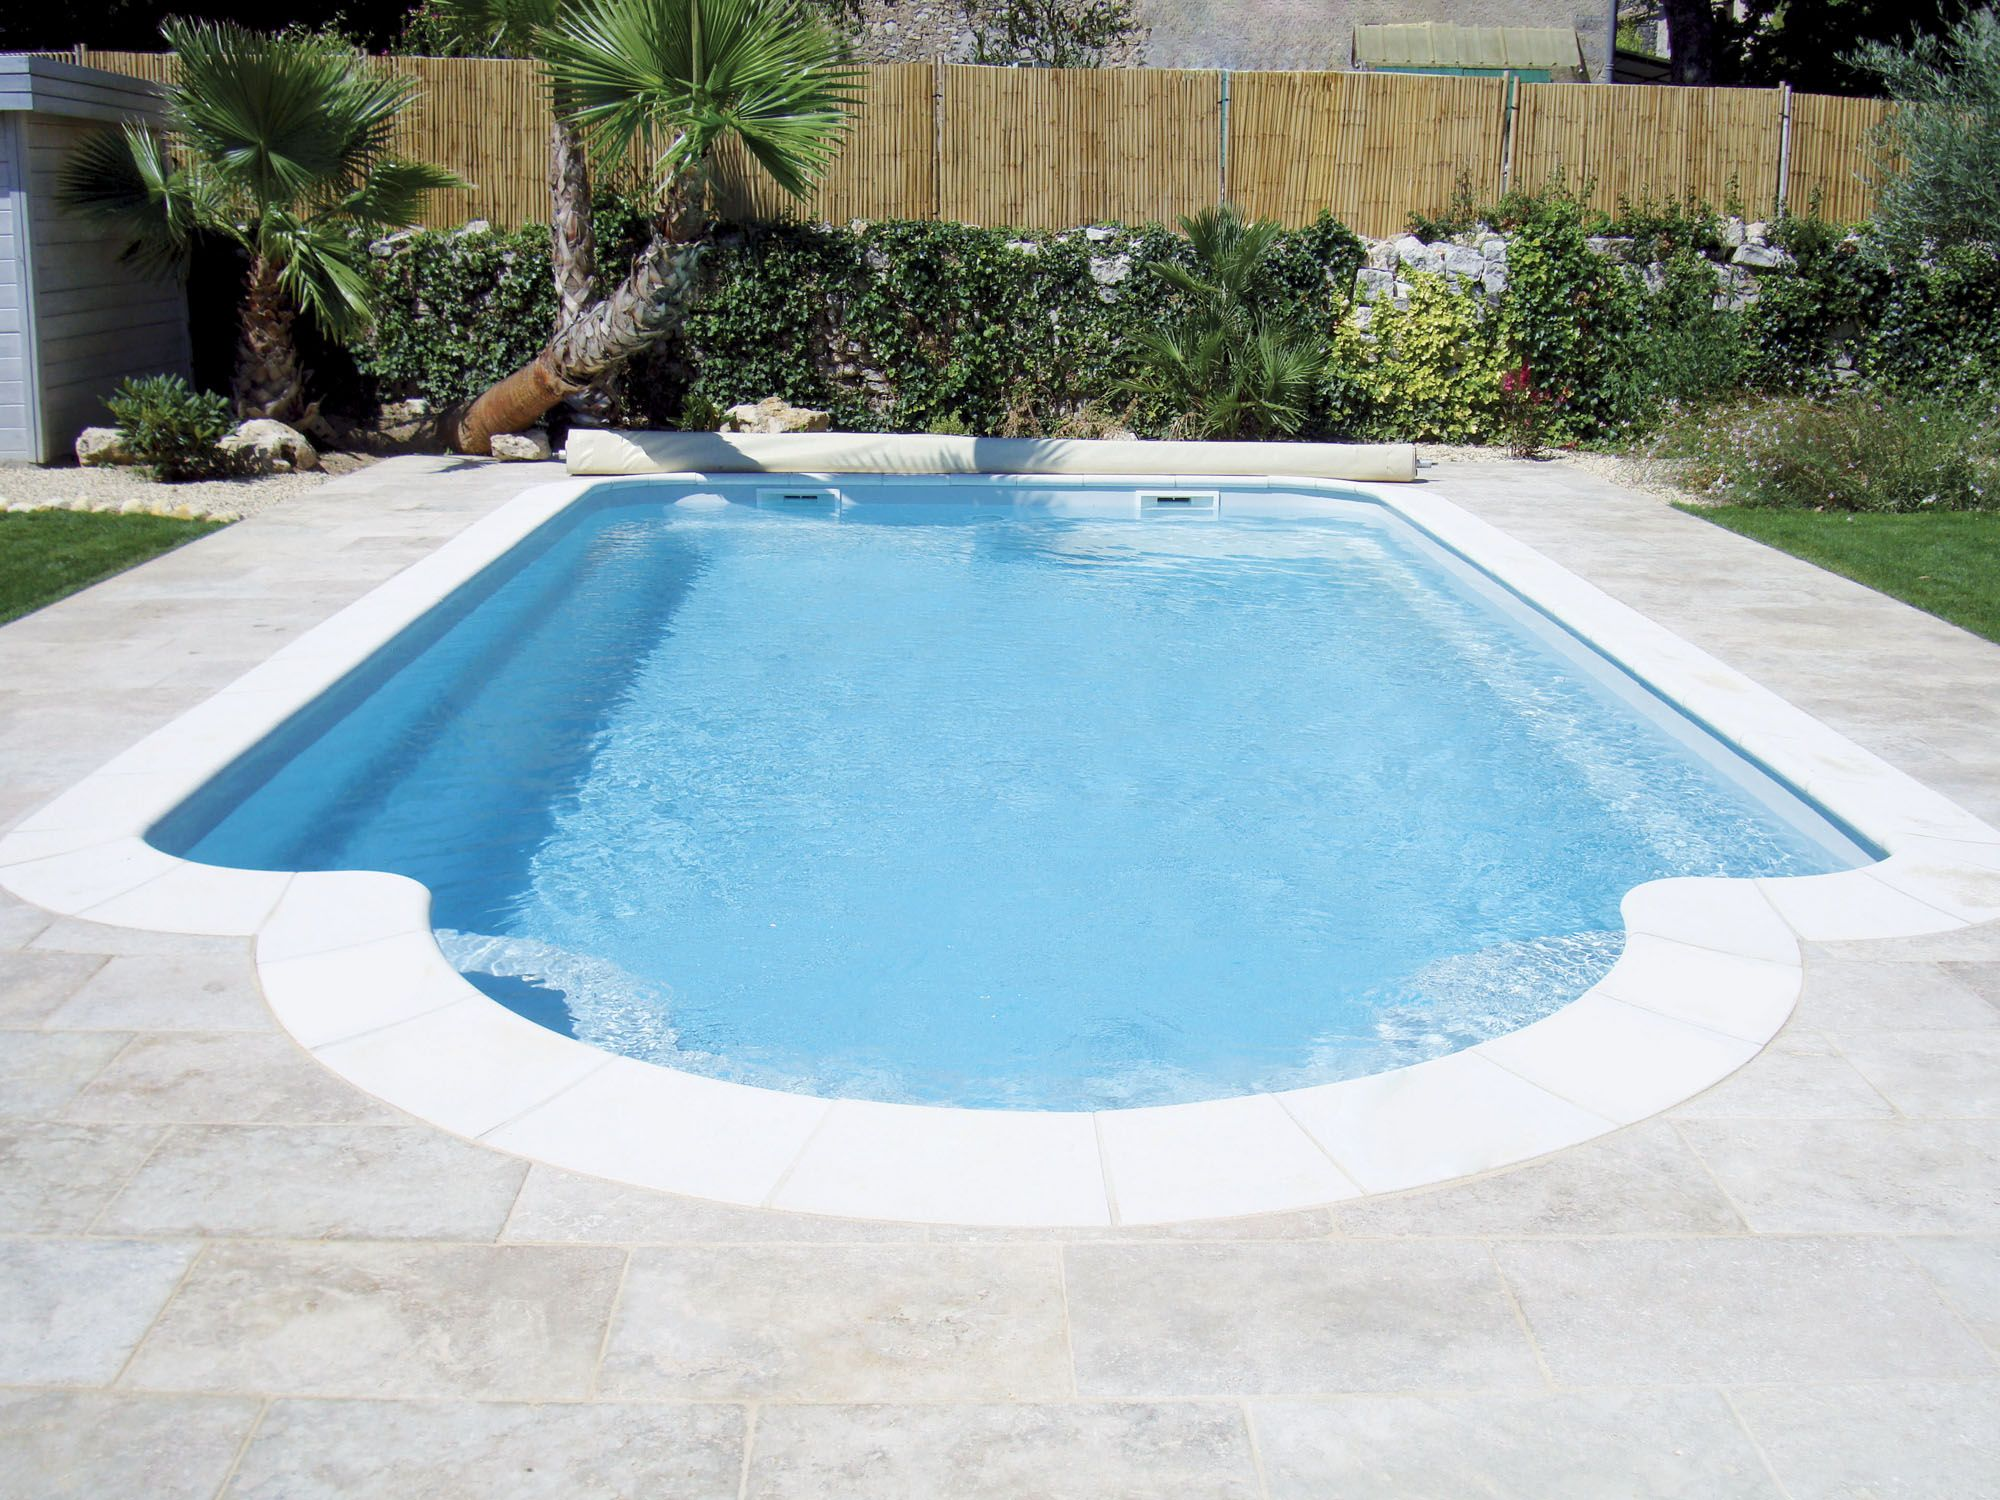 Piscine coque polyester arp ge fabrication fran aise for Prix piscine polyester posee